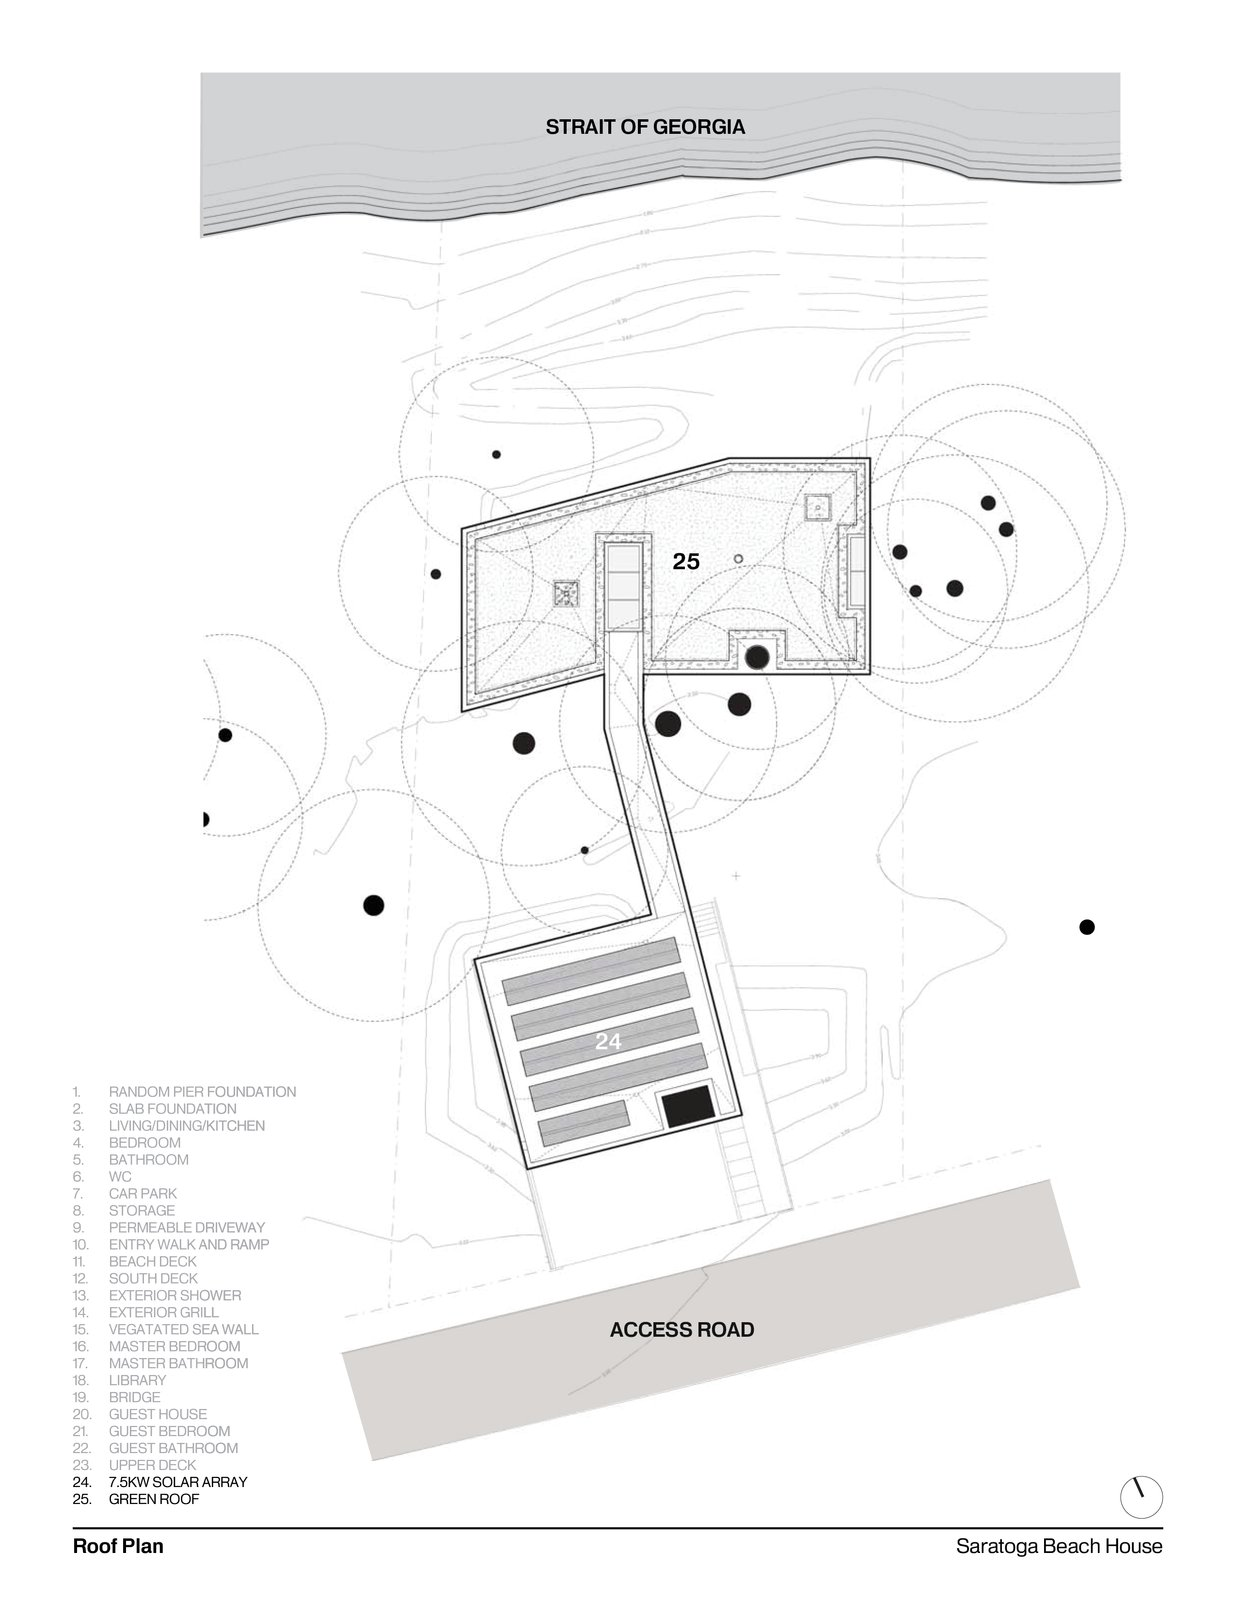 Roof Plan   #intersticearchitects #interstice #floorplan #plan #residentialarchitecture #residential